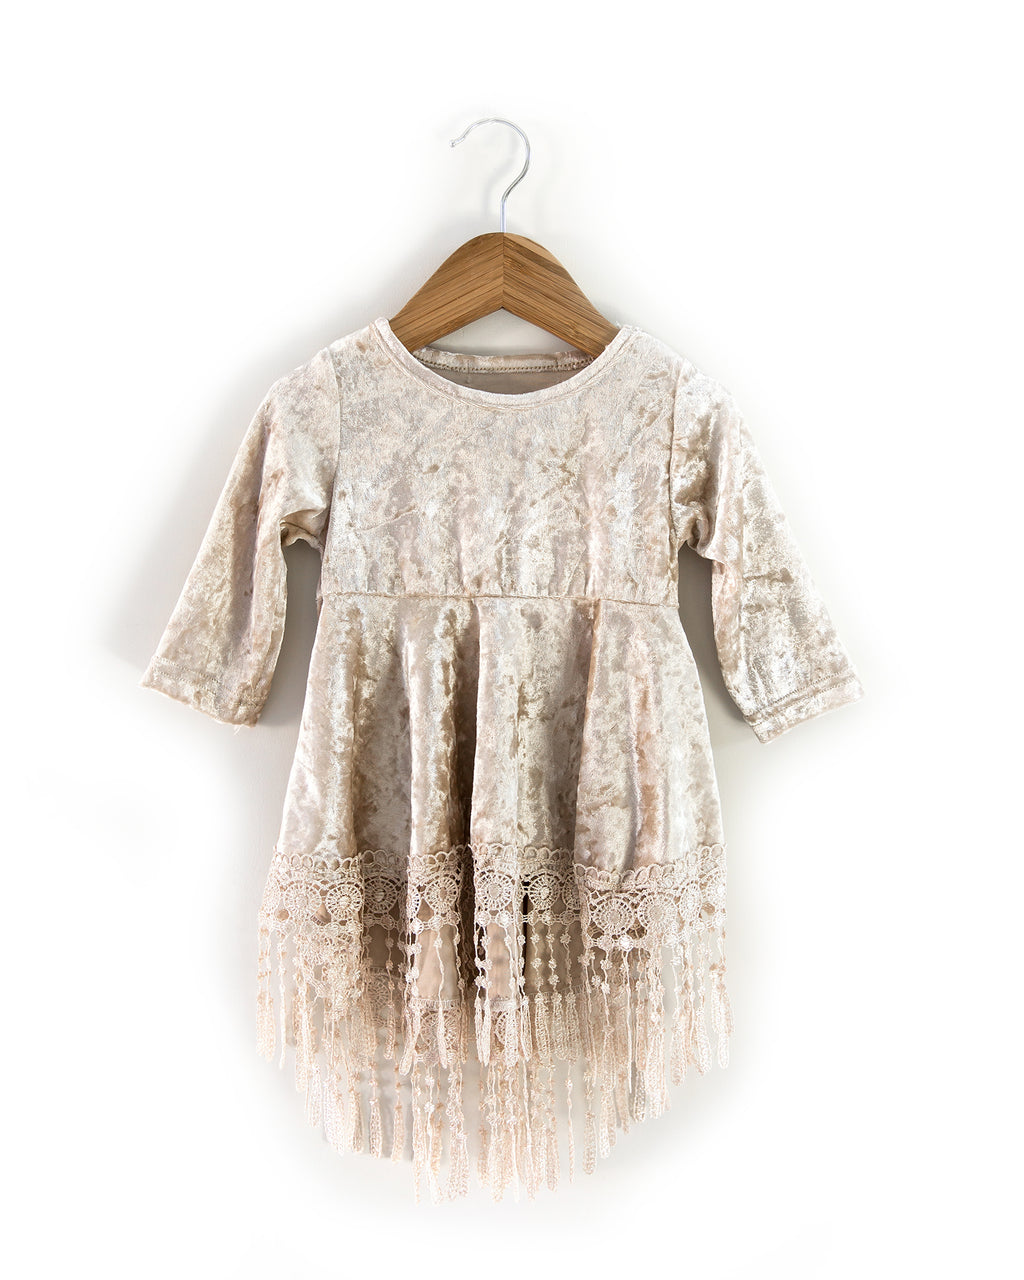 Indi Boho Velvet Dress in Beige - Reverie Threads